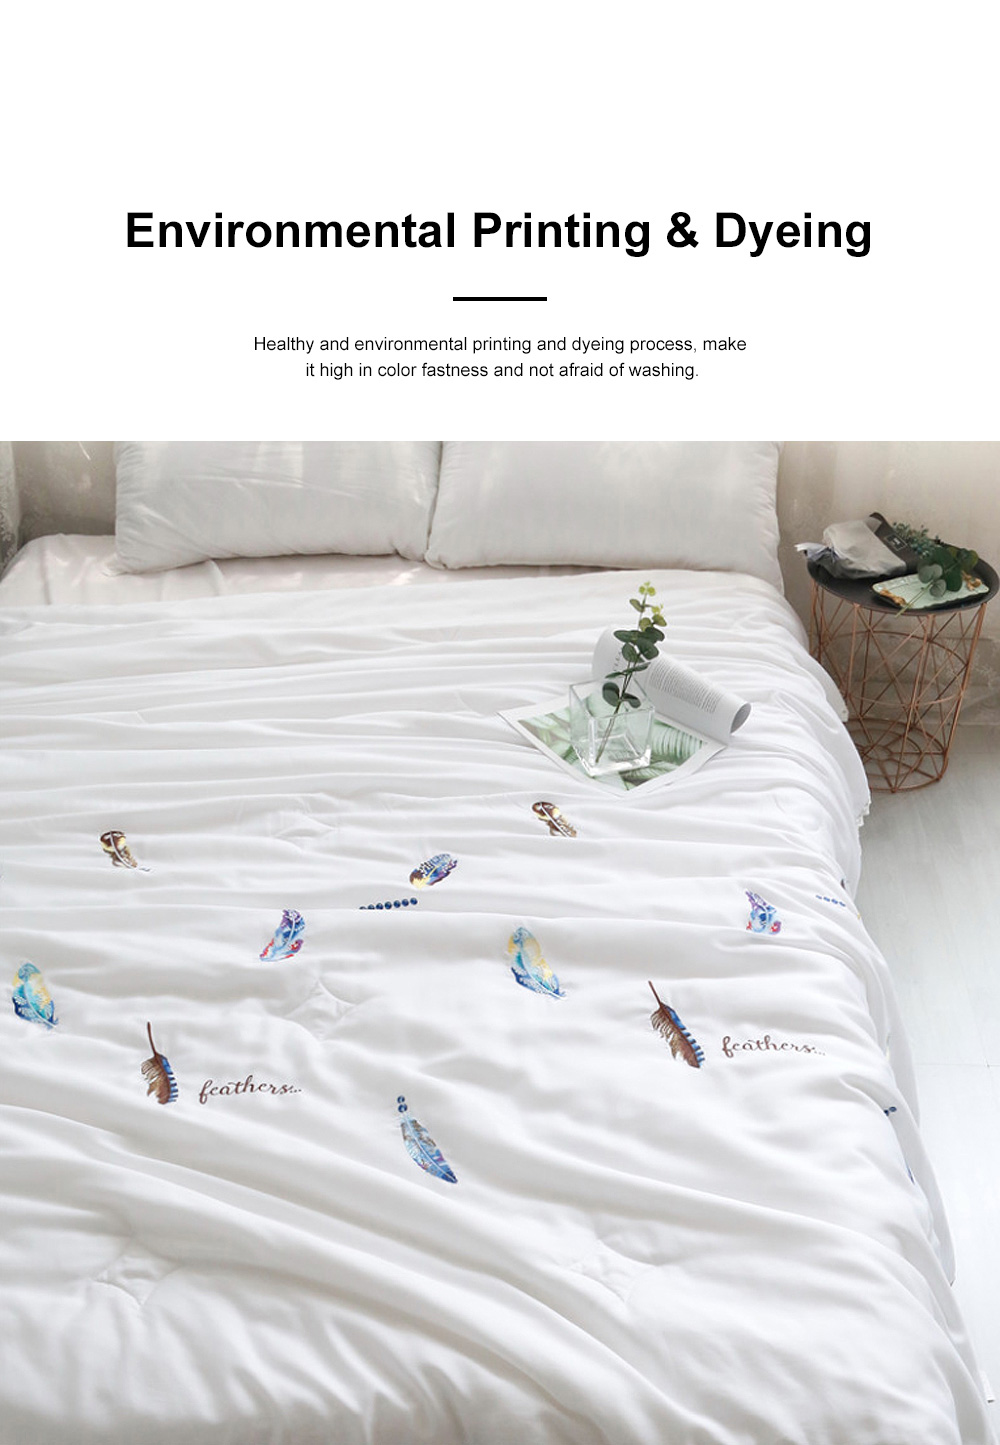 Embroidered Thin Double Summer Quilt Size High Quality Tencel Material Air Conditioning Cool Quilt 2